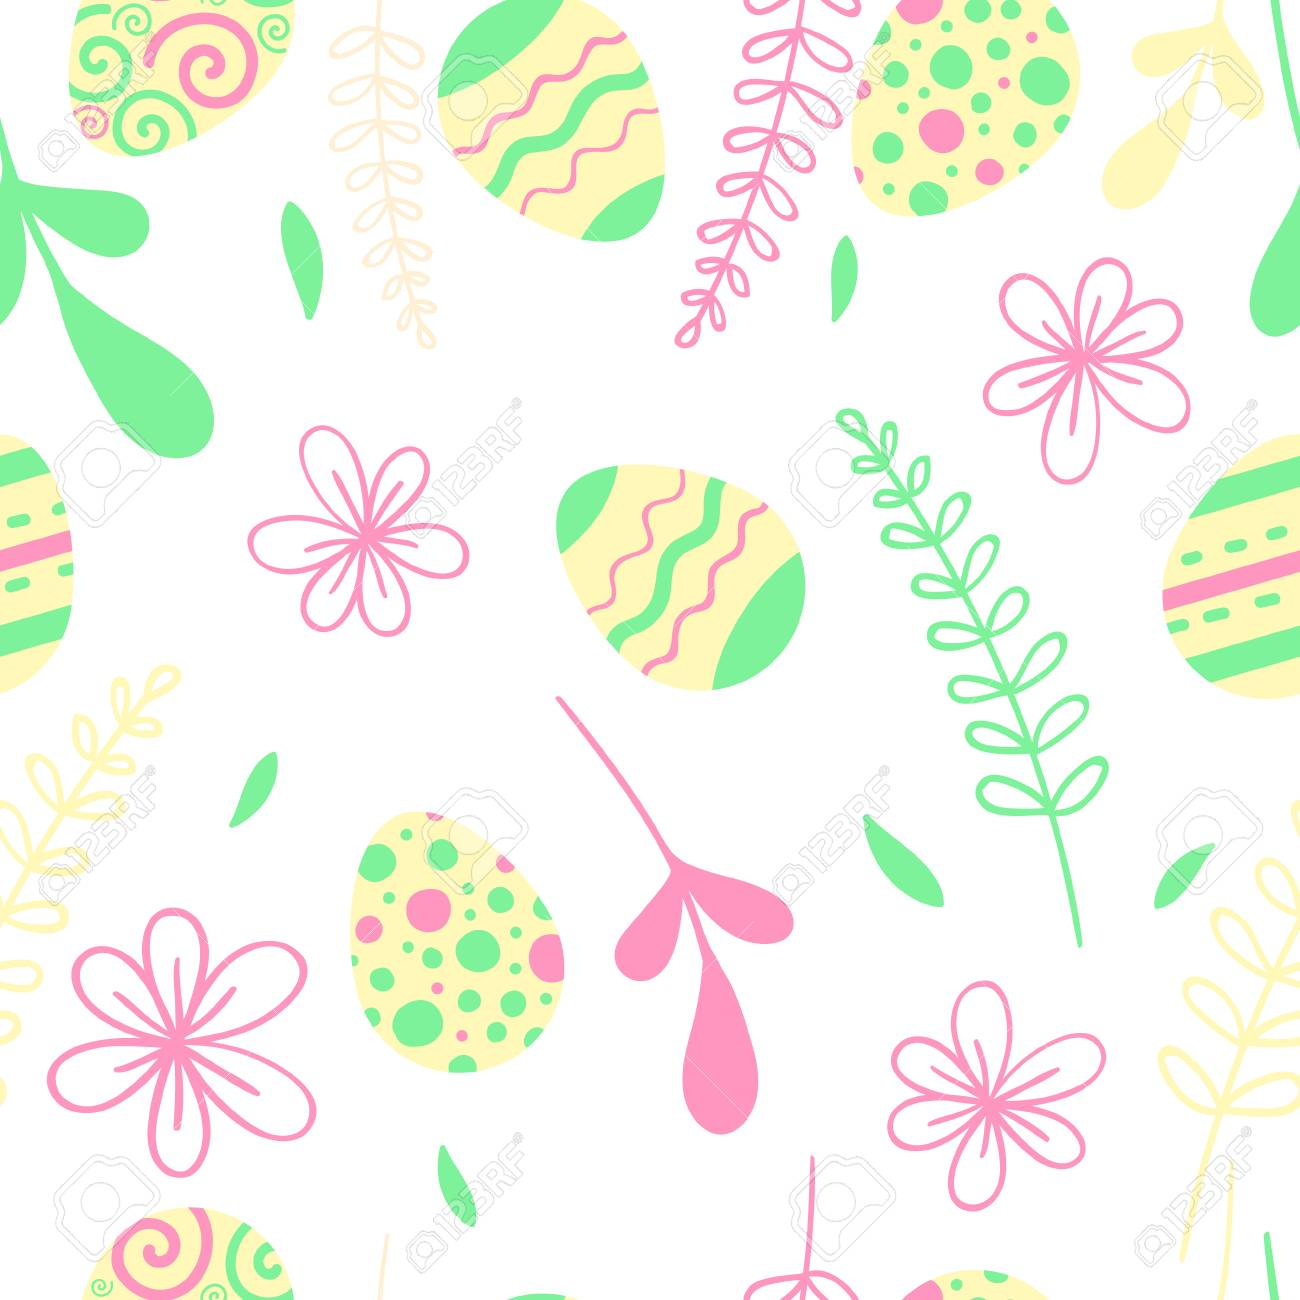 Easter seamless pattern with flowers. Egg hunt vector illustration. - 97500961